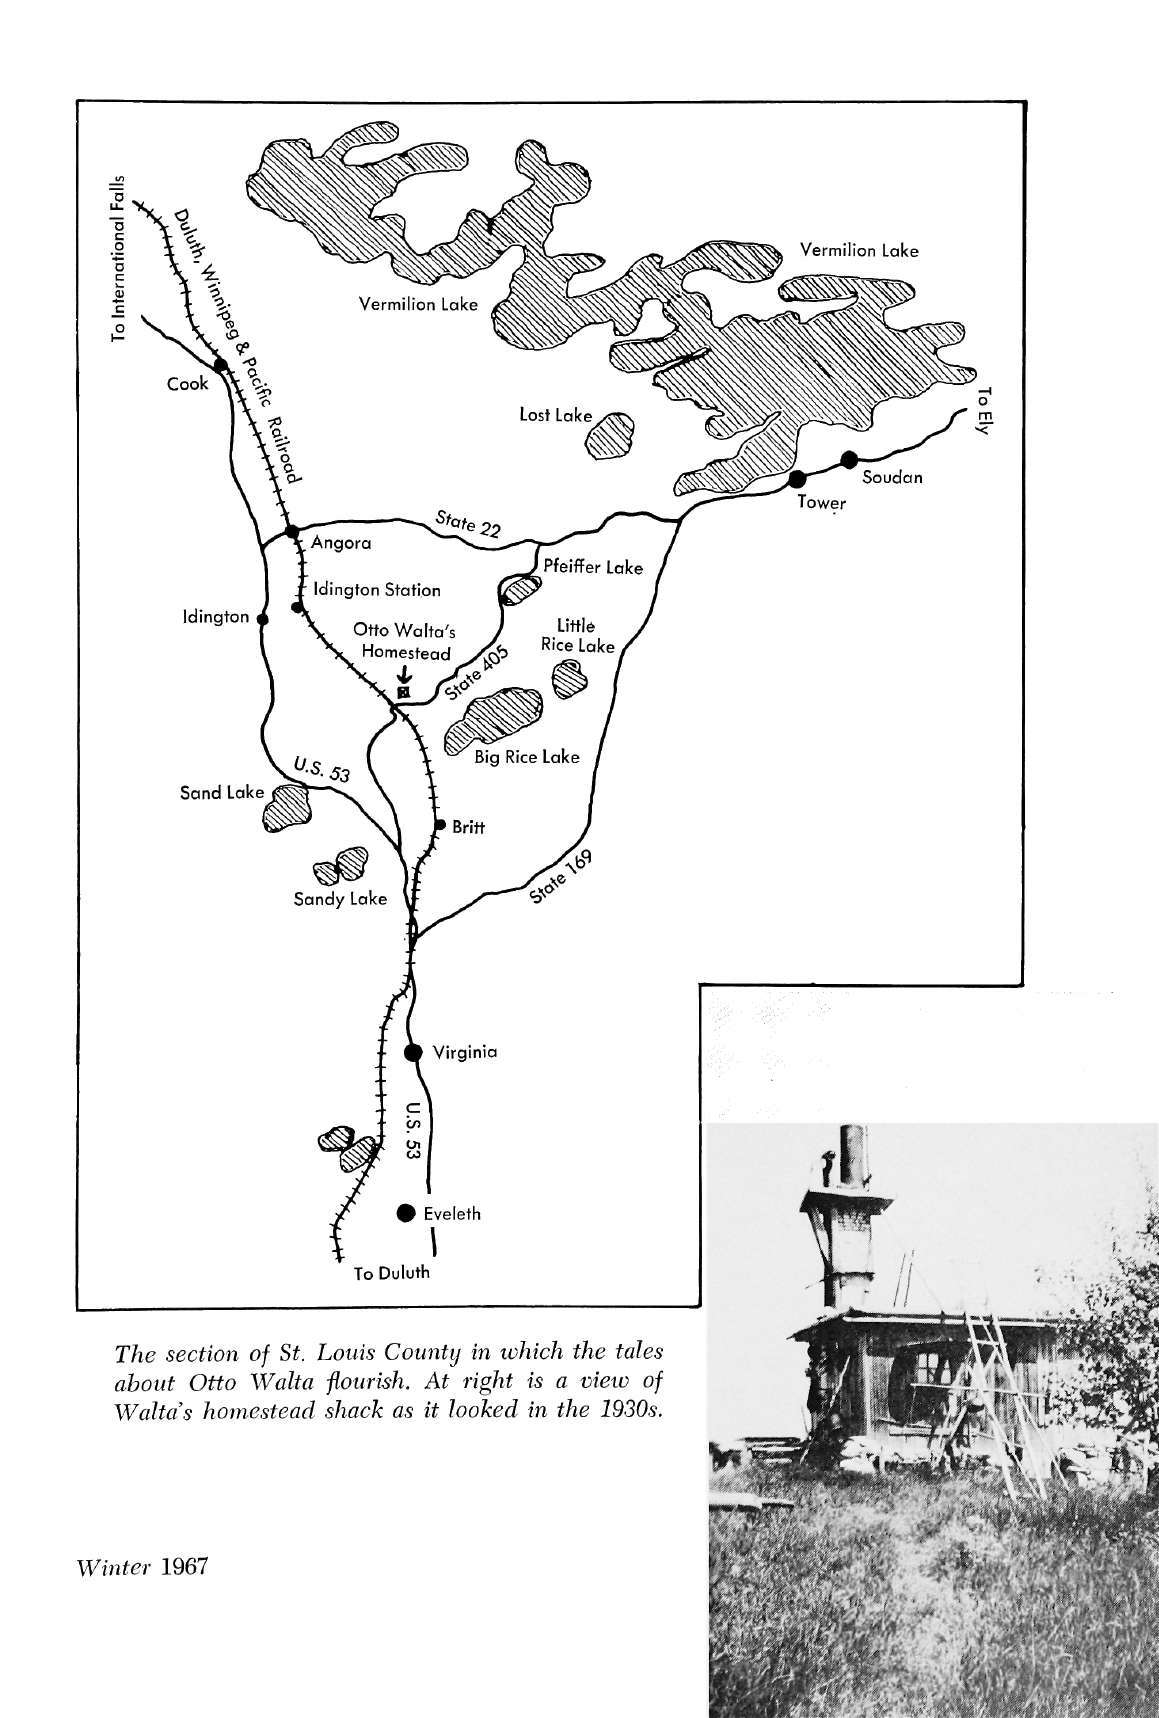 The section of St. Louis County in which the tales about Otto Walta fiourish.